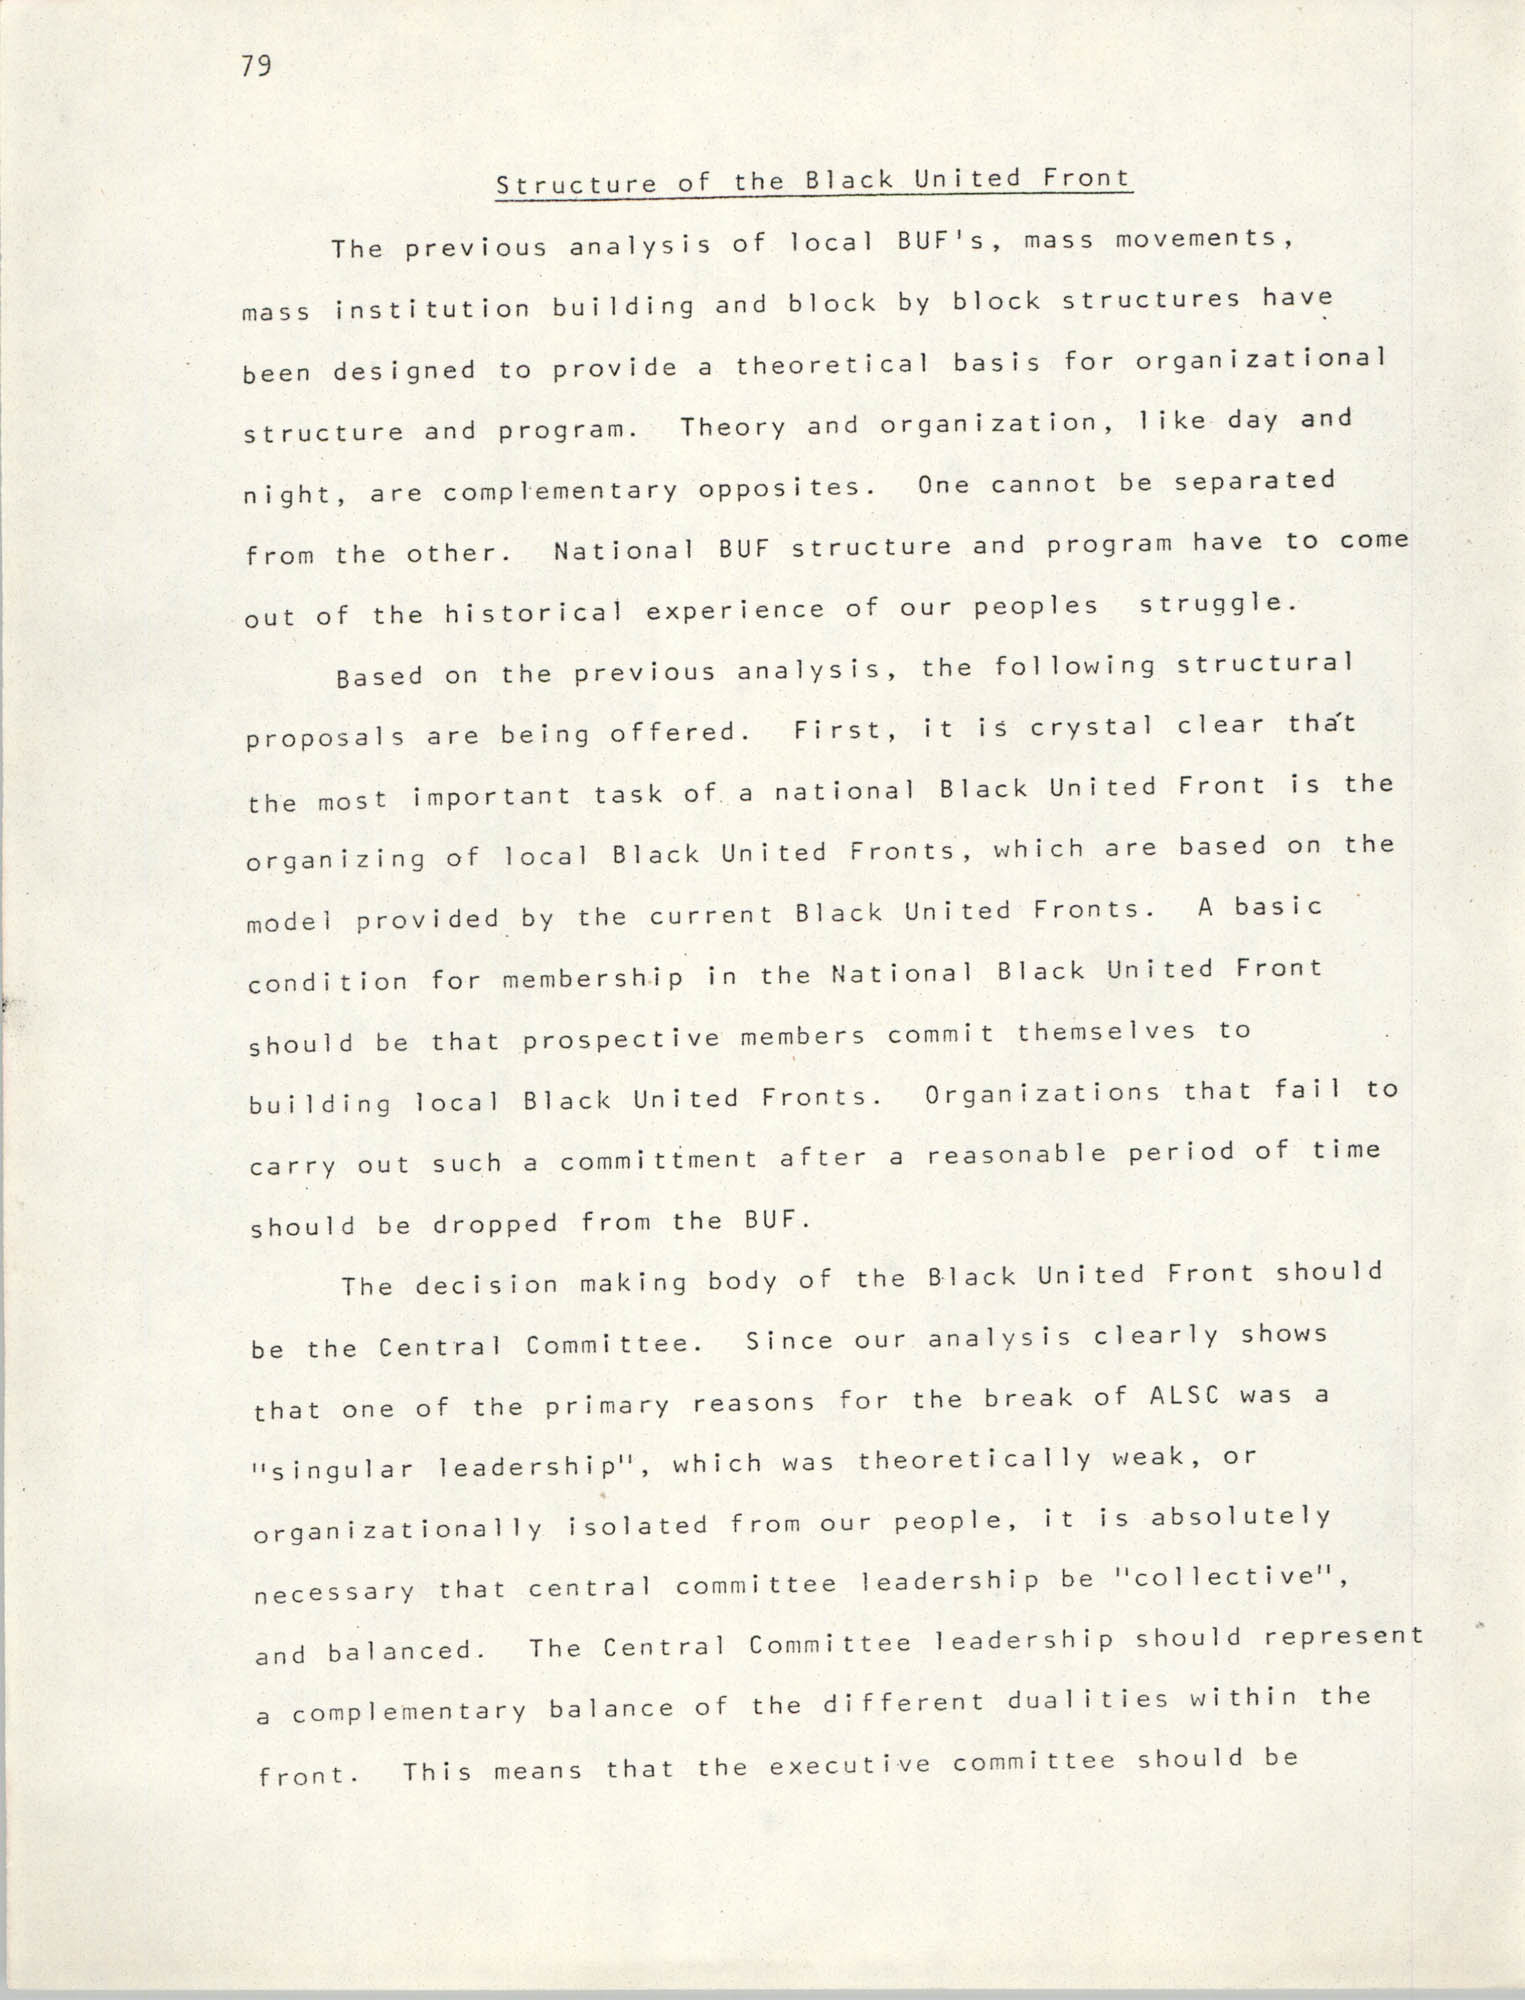 Pan-African Committee of the Black United Front, Page 79